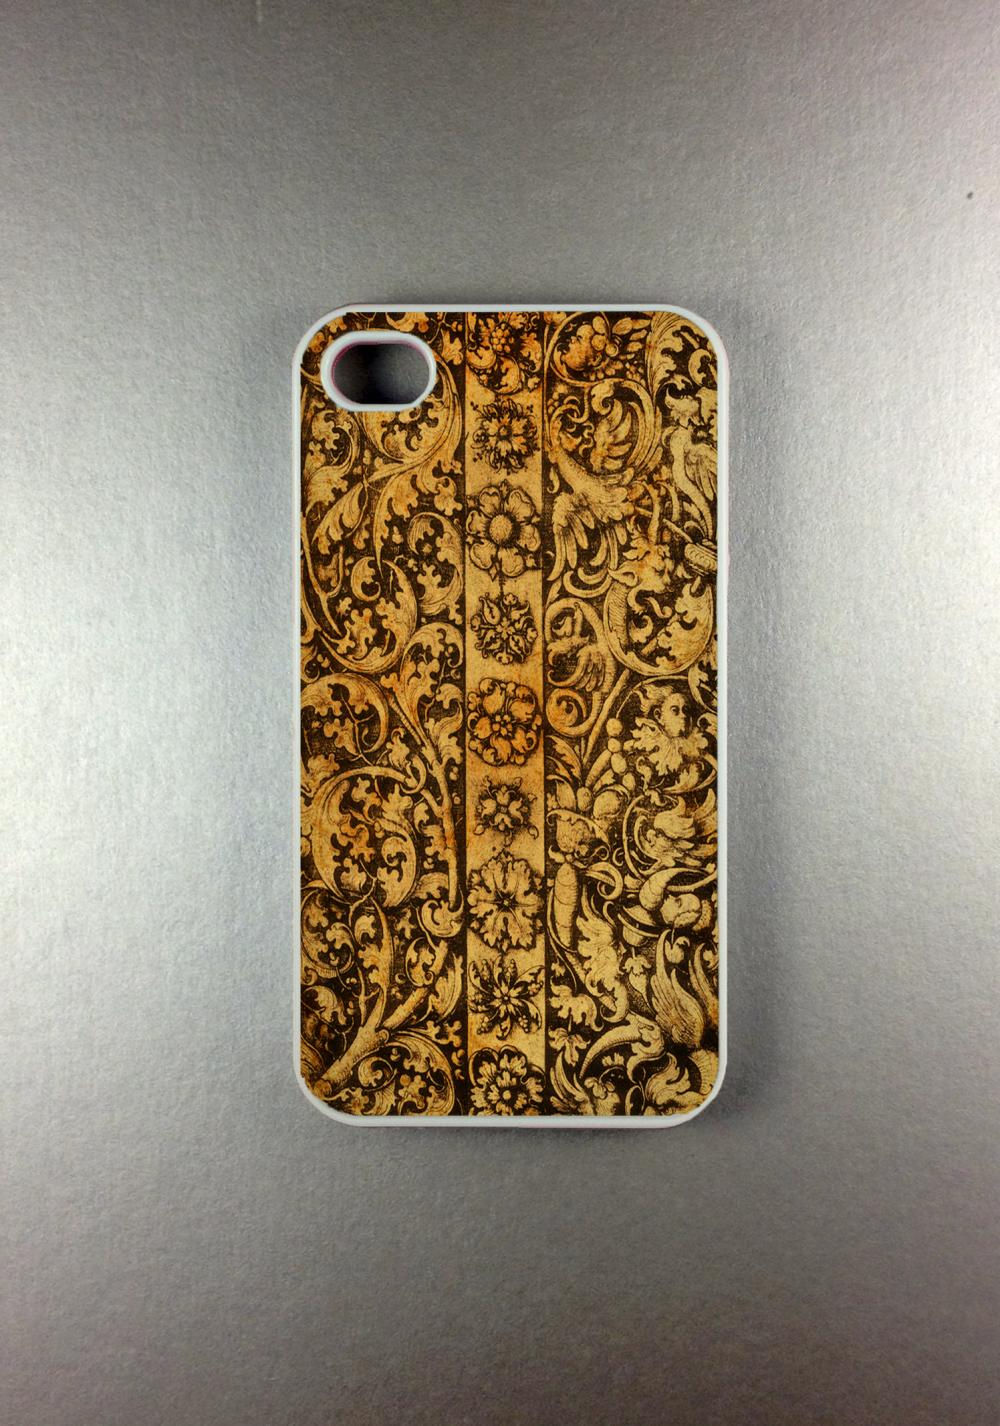 Iphone 4 Case - Carved Wood Iphone 4s Case, Iphone Case, Iphone 4 Cover